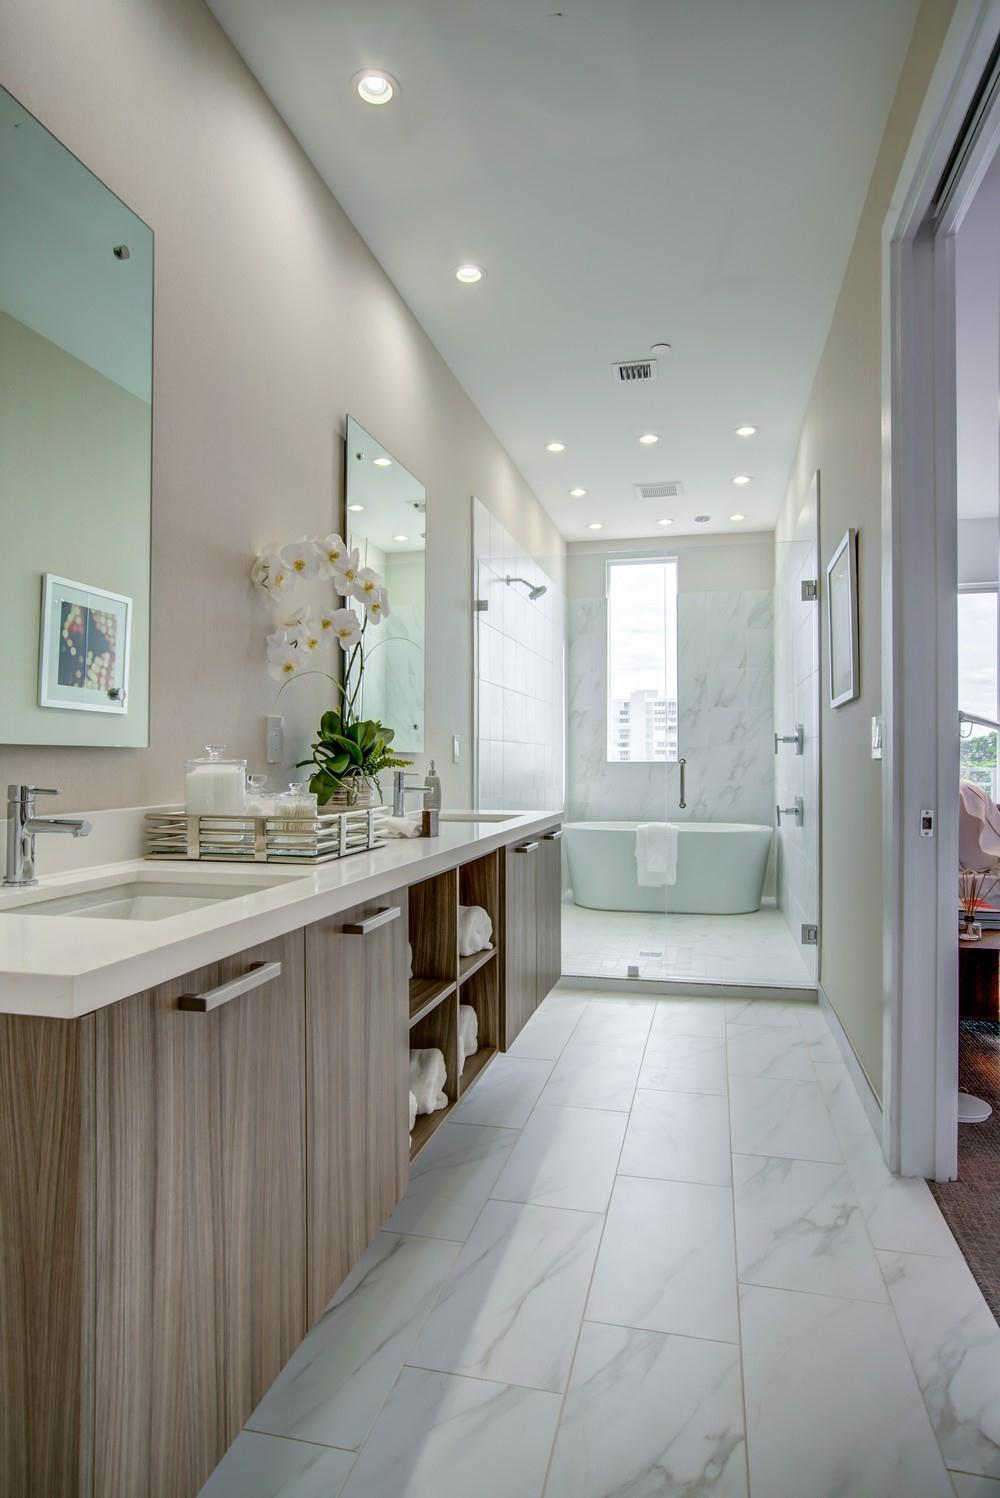 Bathroom featured in the Model D - East By Sobel Co in Broward County-Ft. Lauderdale, FL